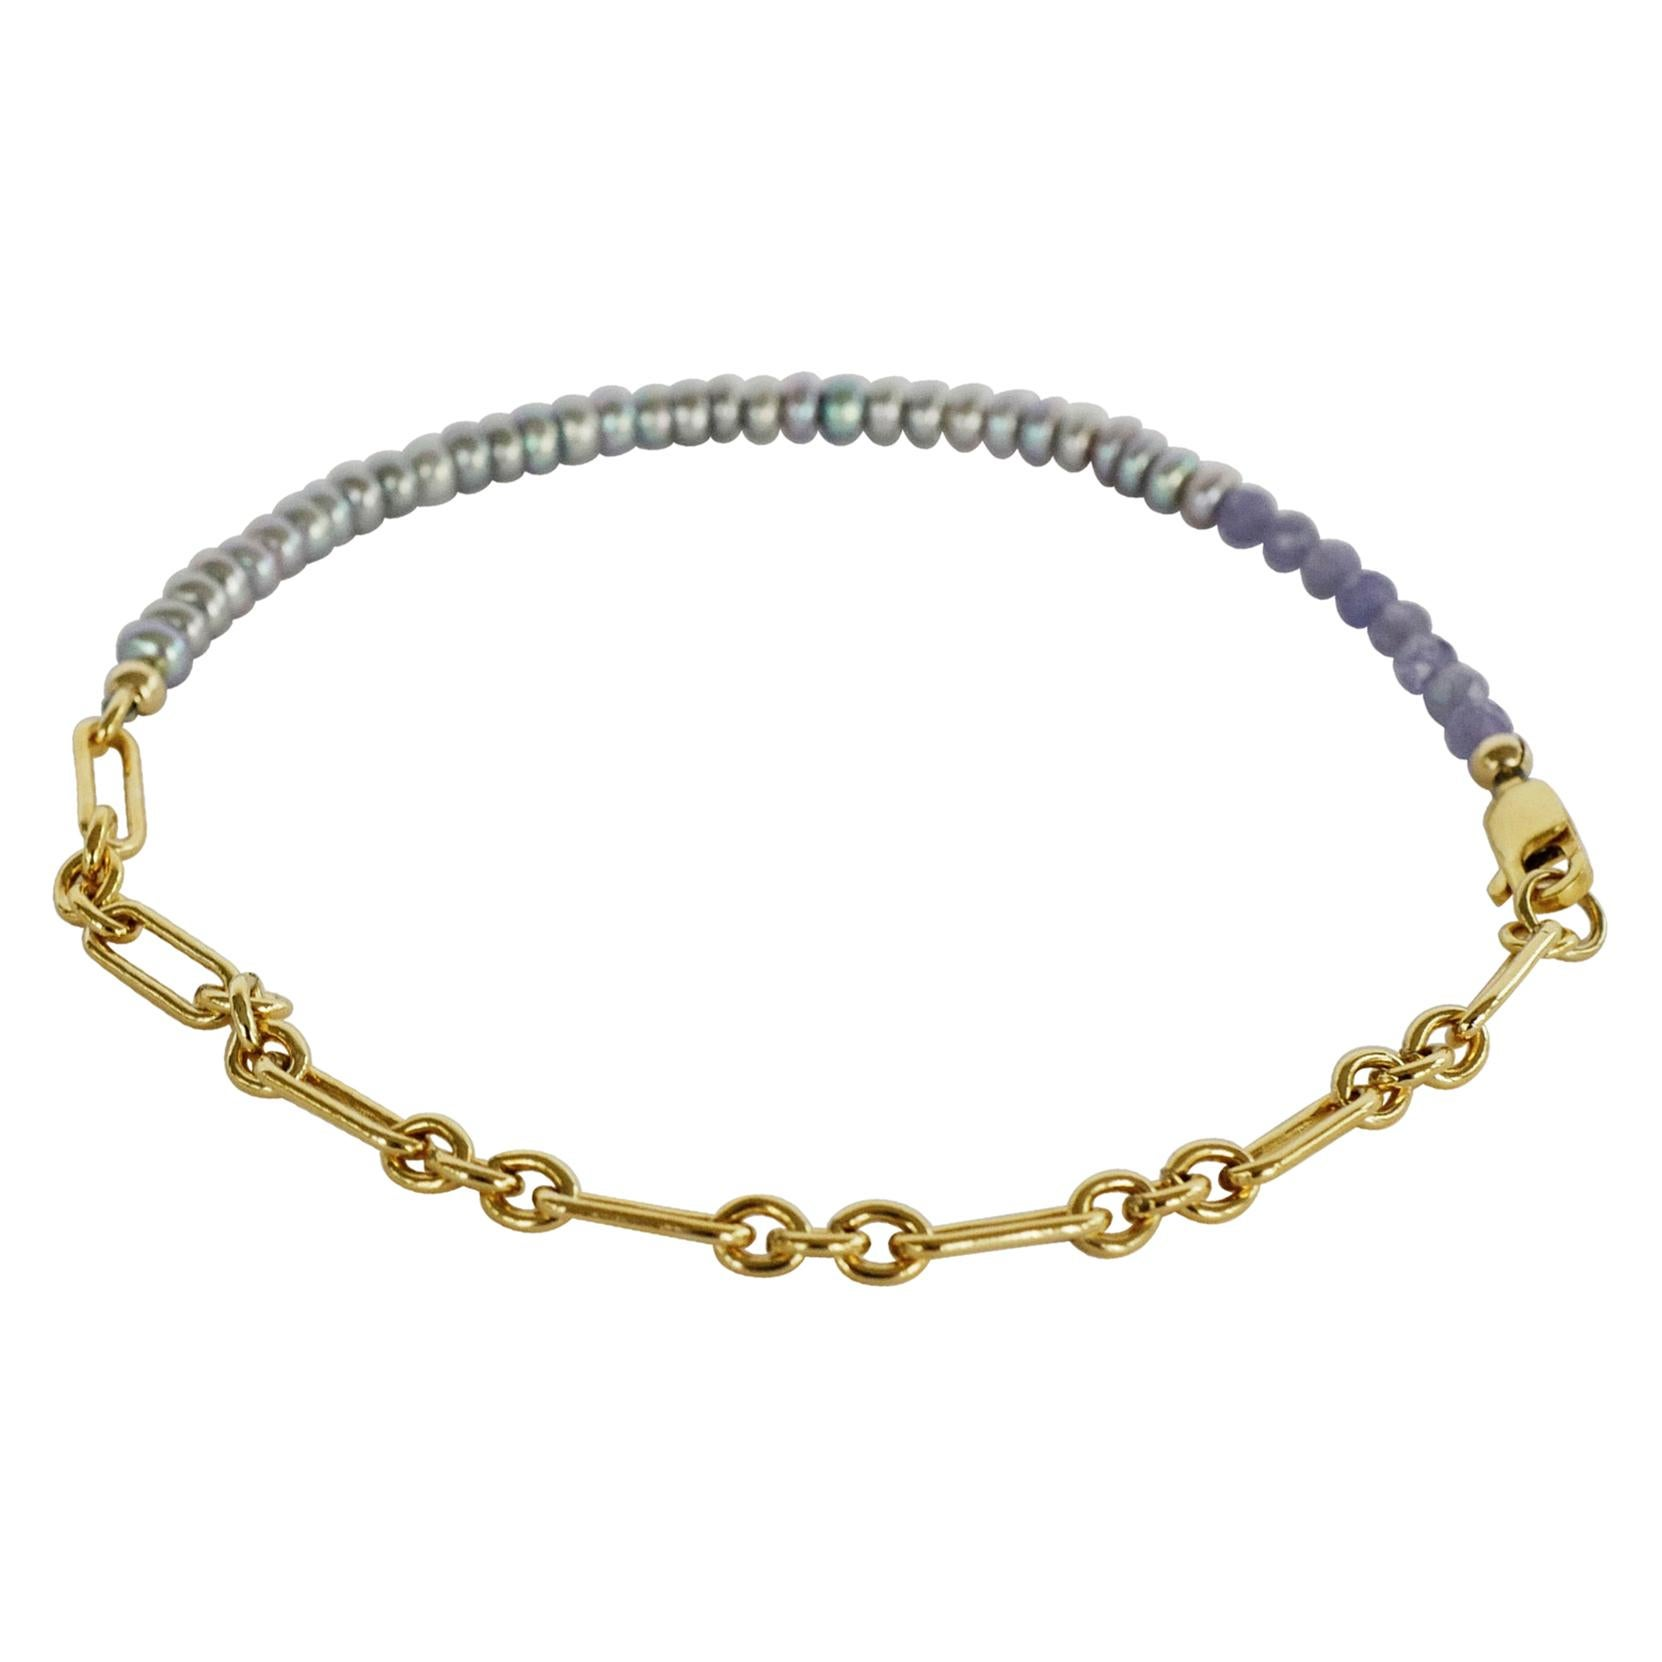 Pearl Tanzanite Ankle Bracelet Beaded Gold Filled Chain J Dauphin